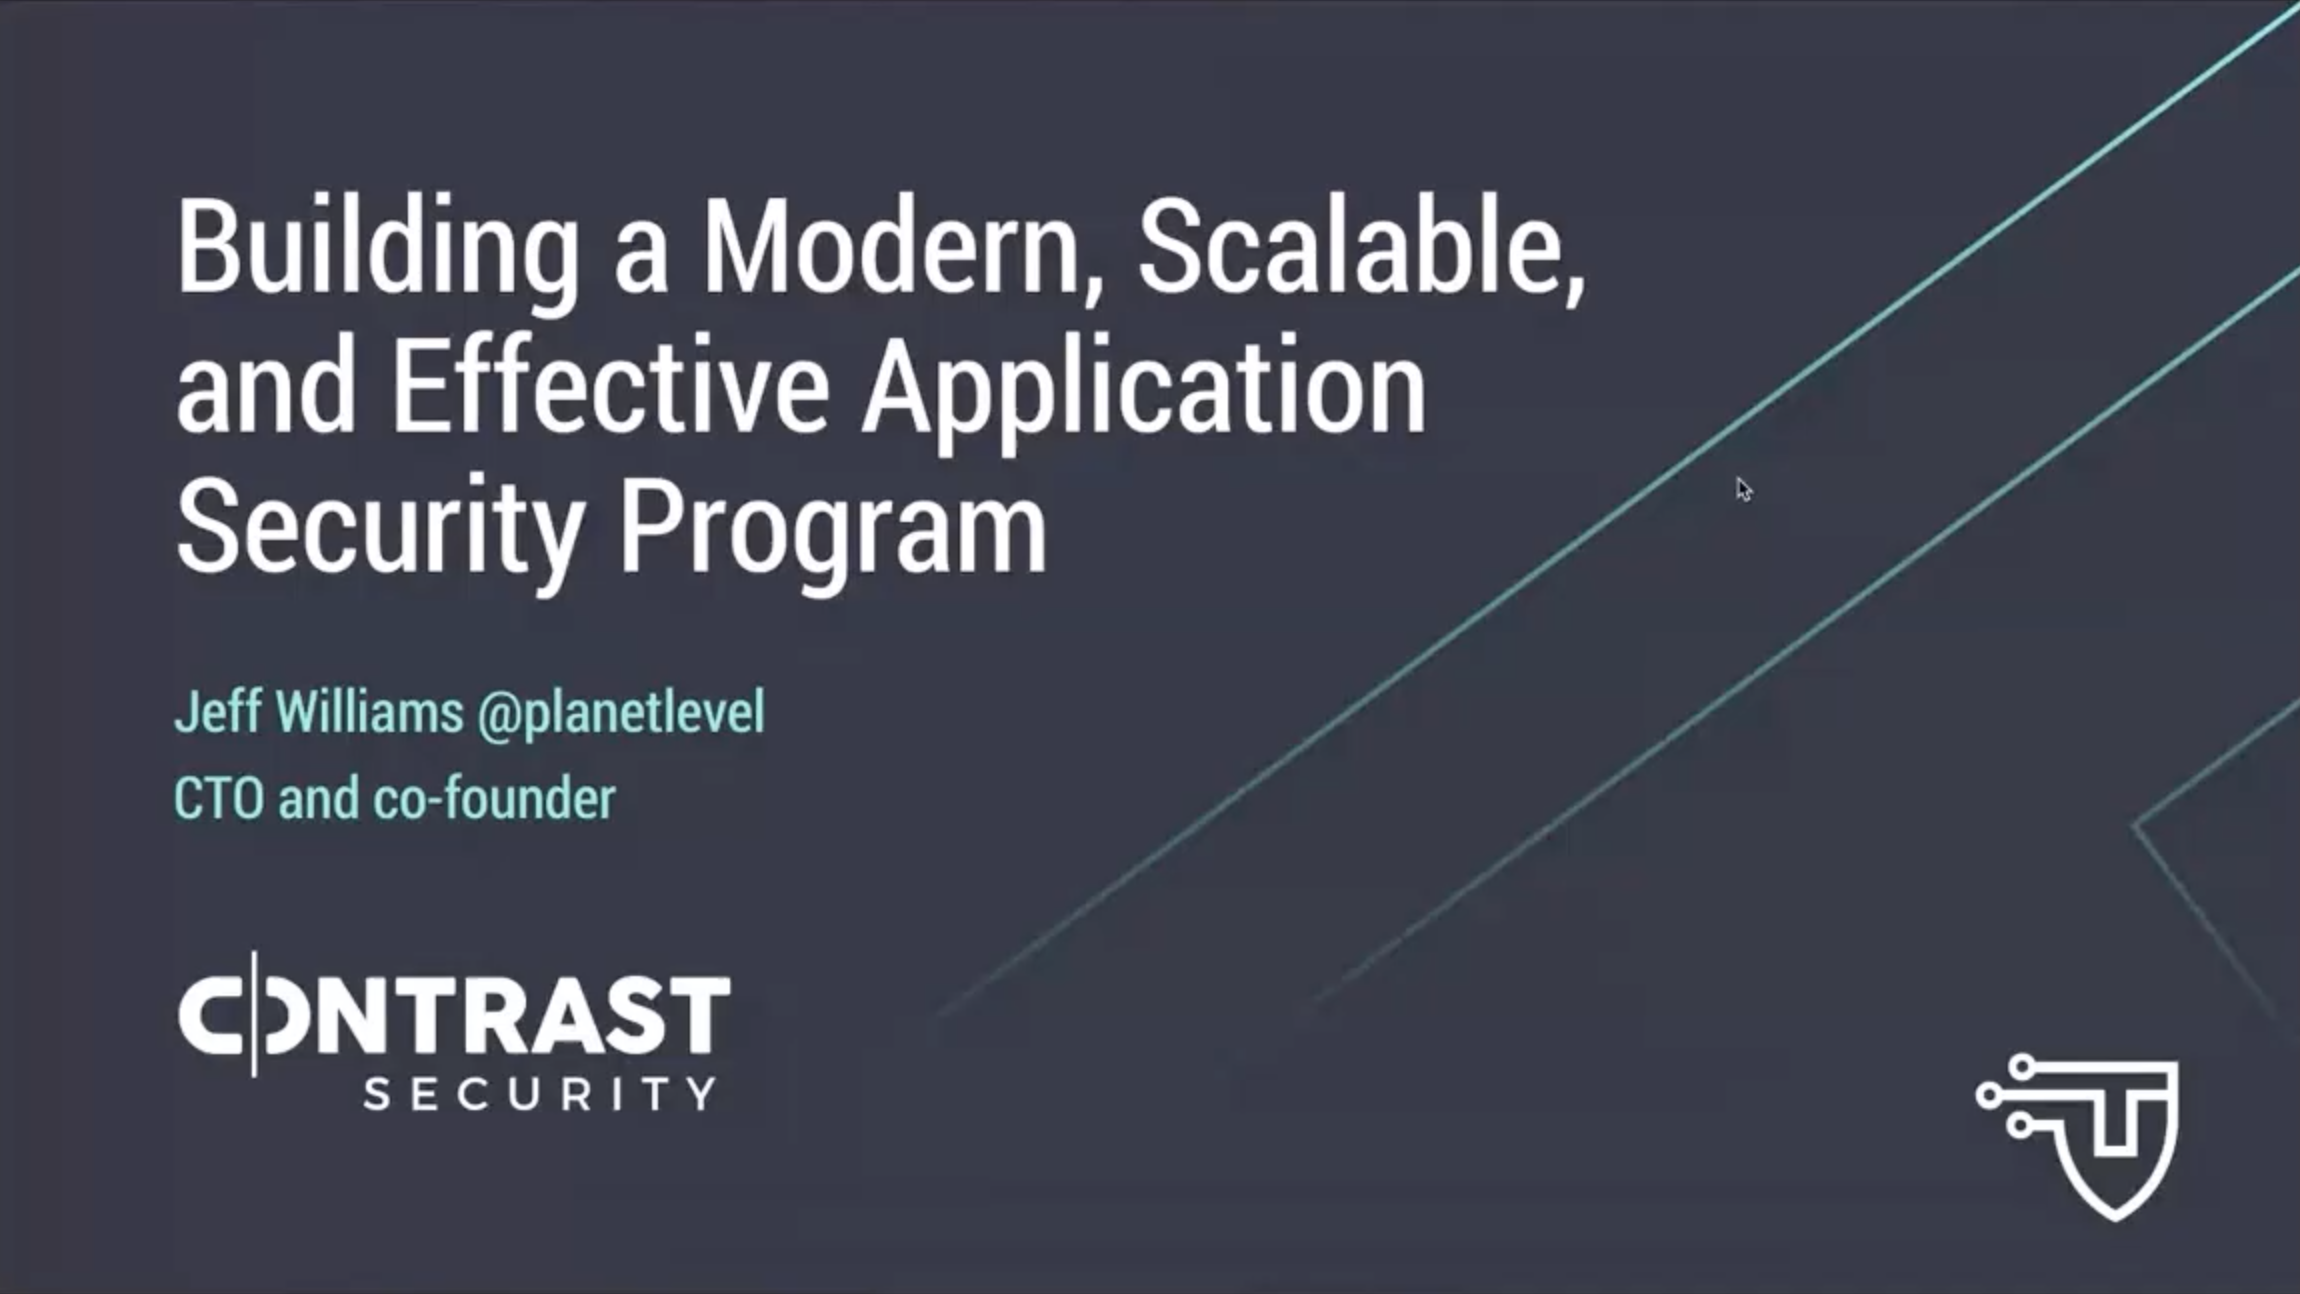 Building a Modern, Scalable, and Effective Application Security Program